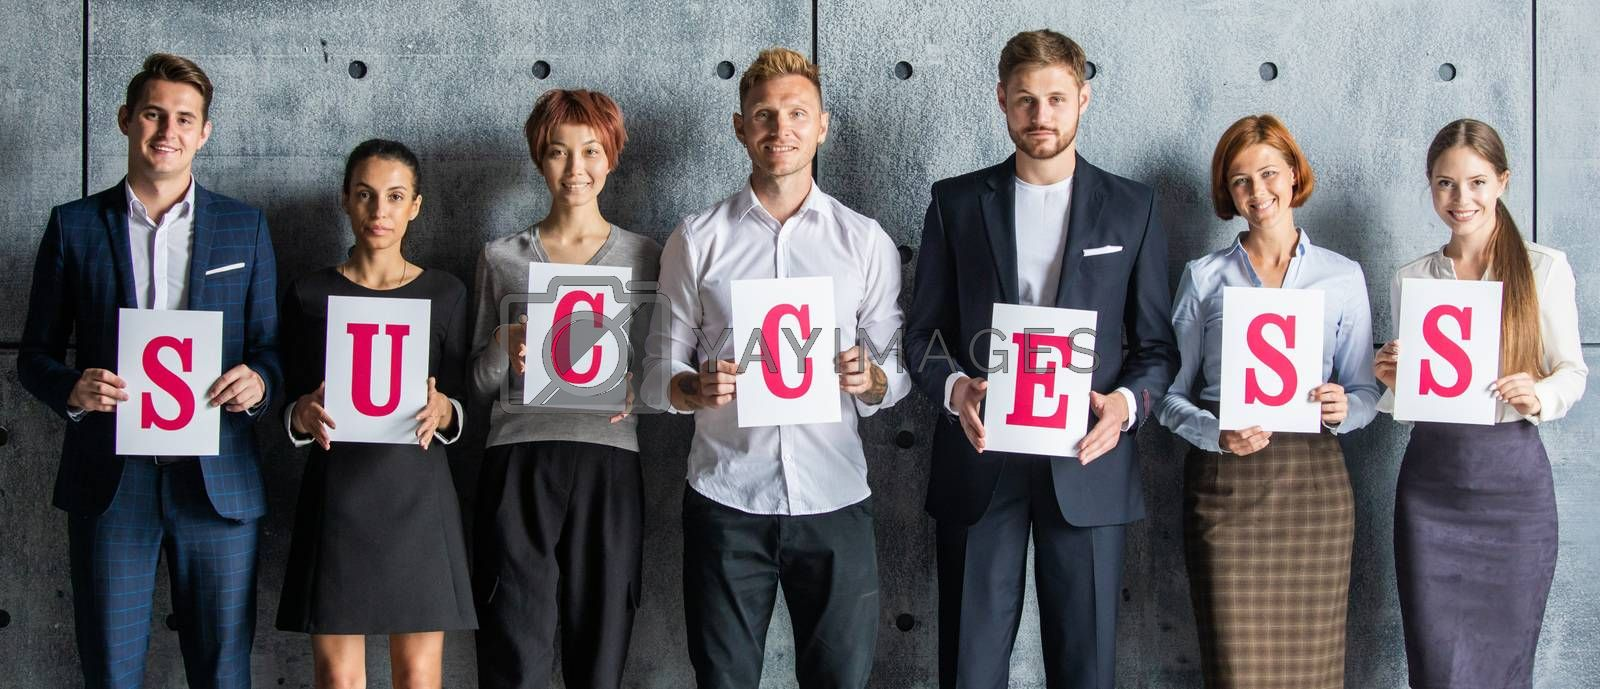 Business people holding SUCCESS letters printed on paper